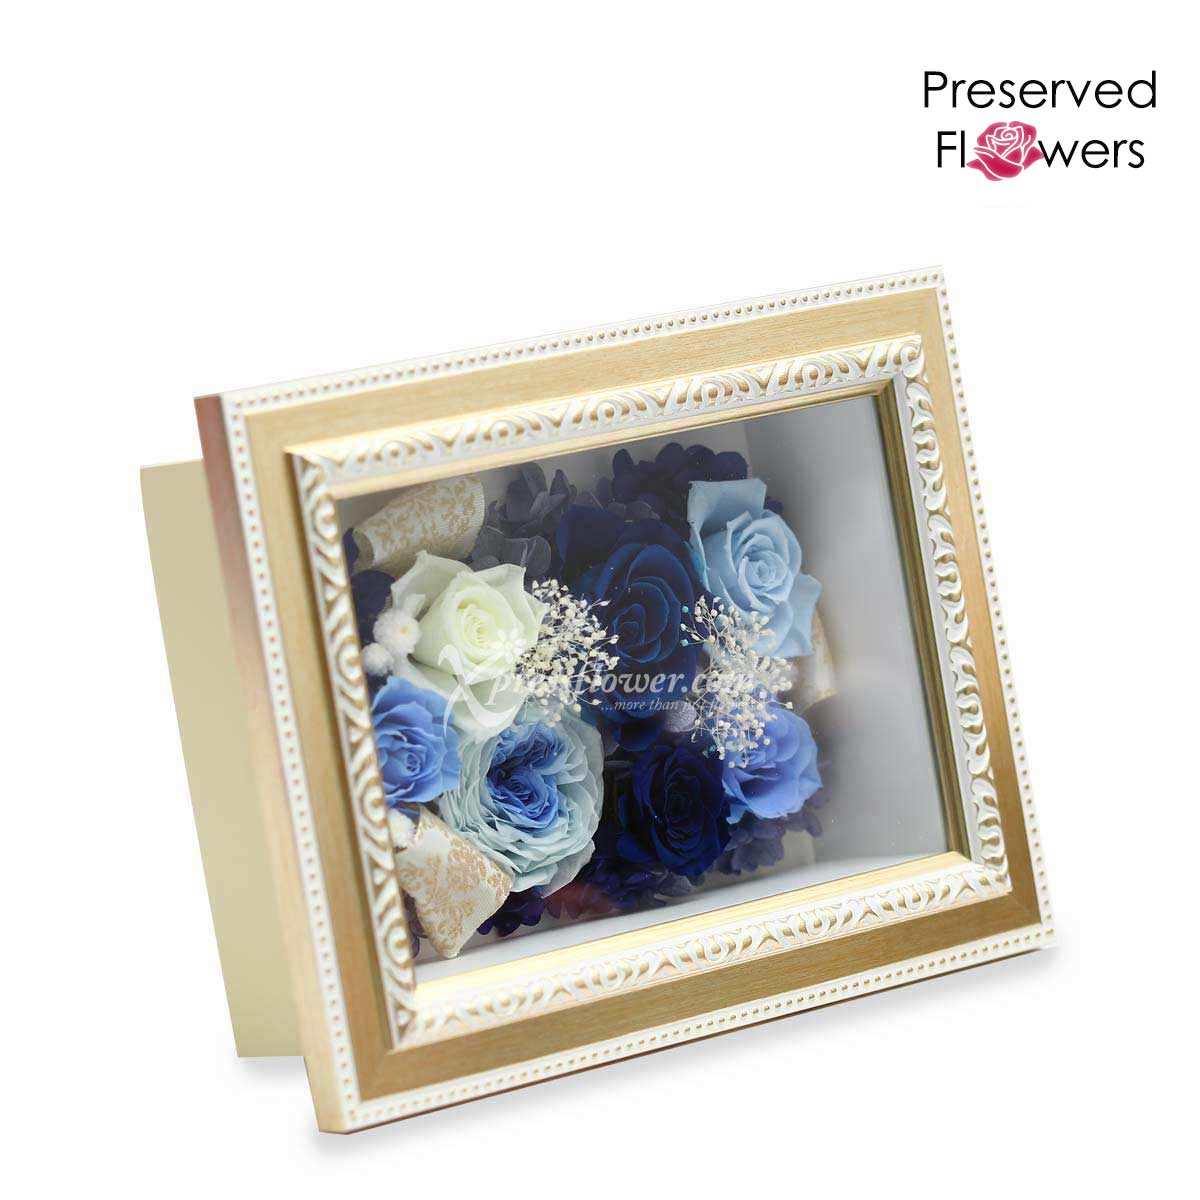 PR1906 Eternity with You preserved flowers